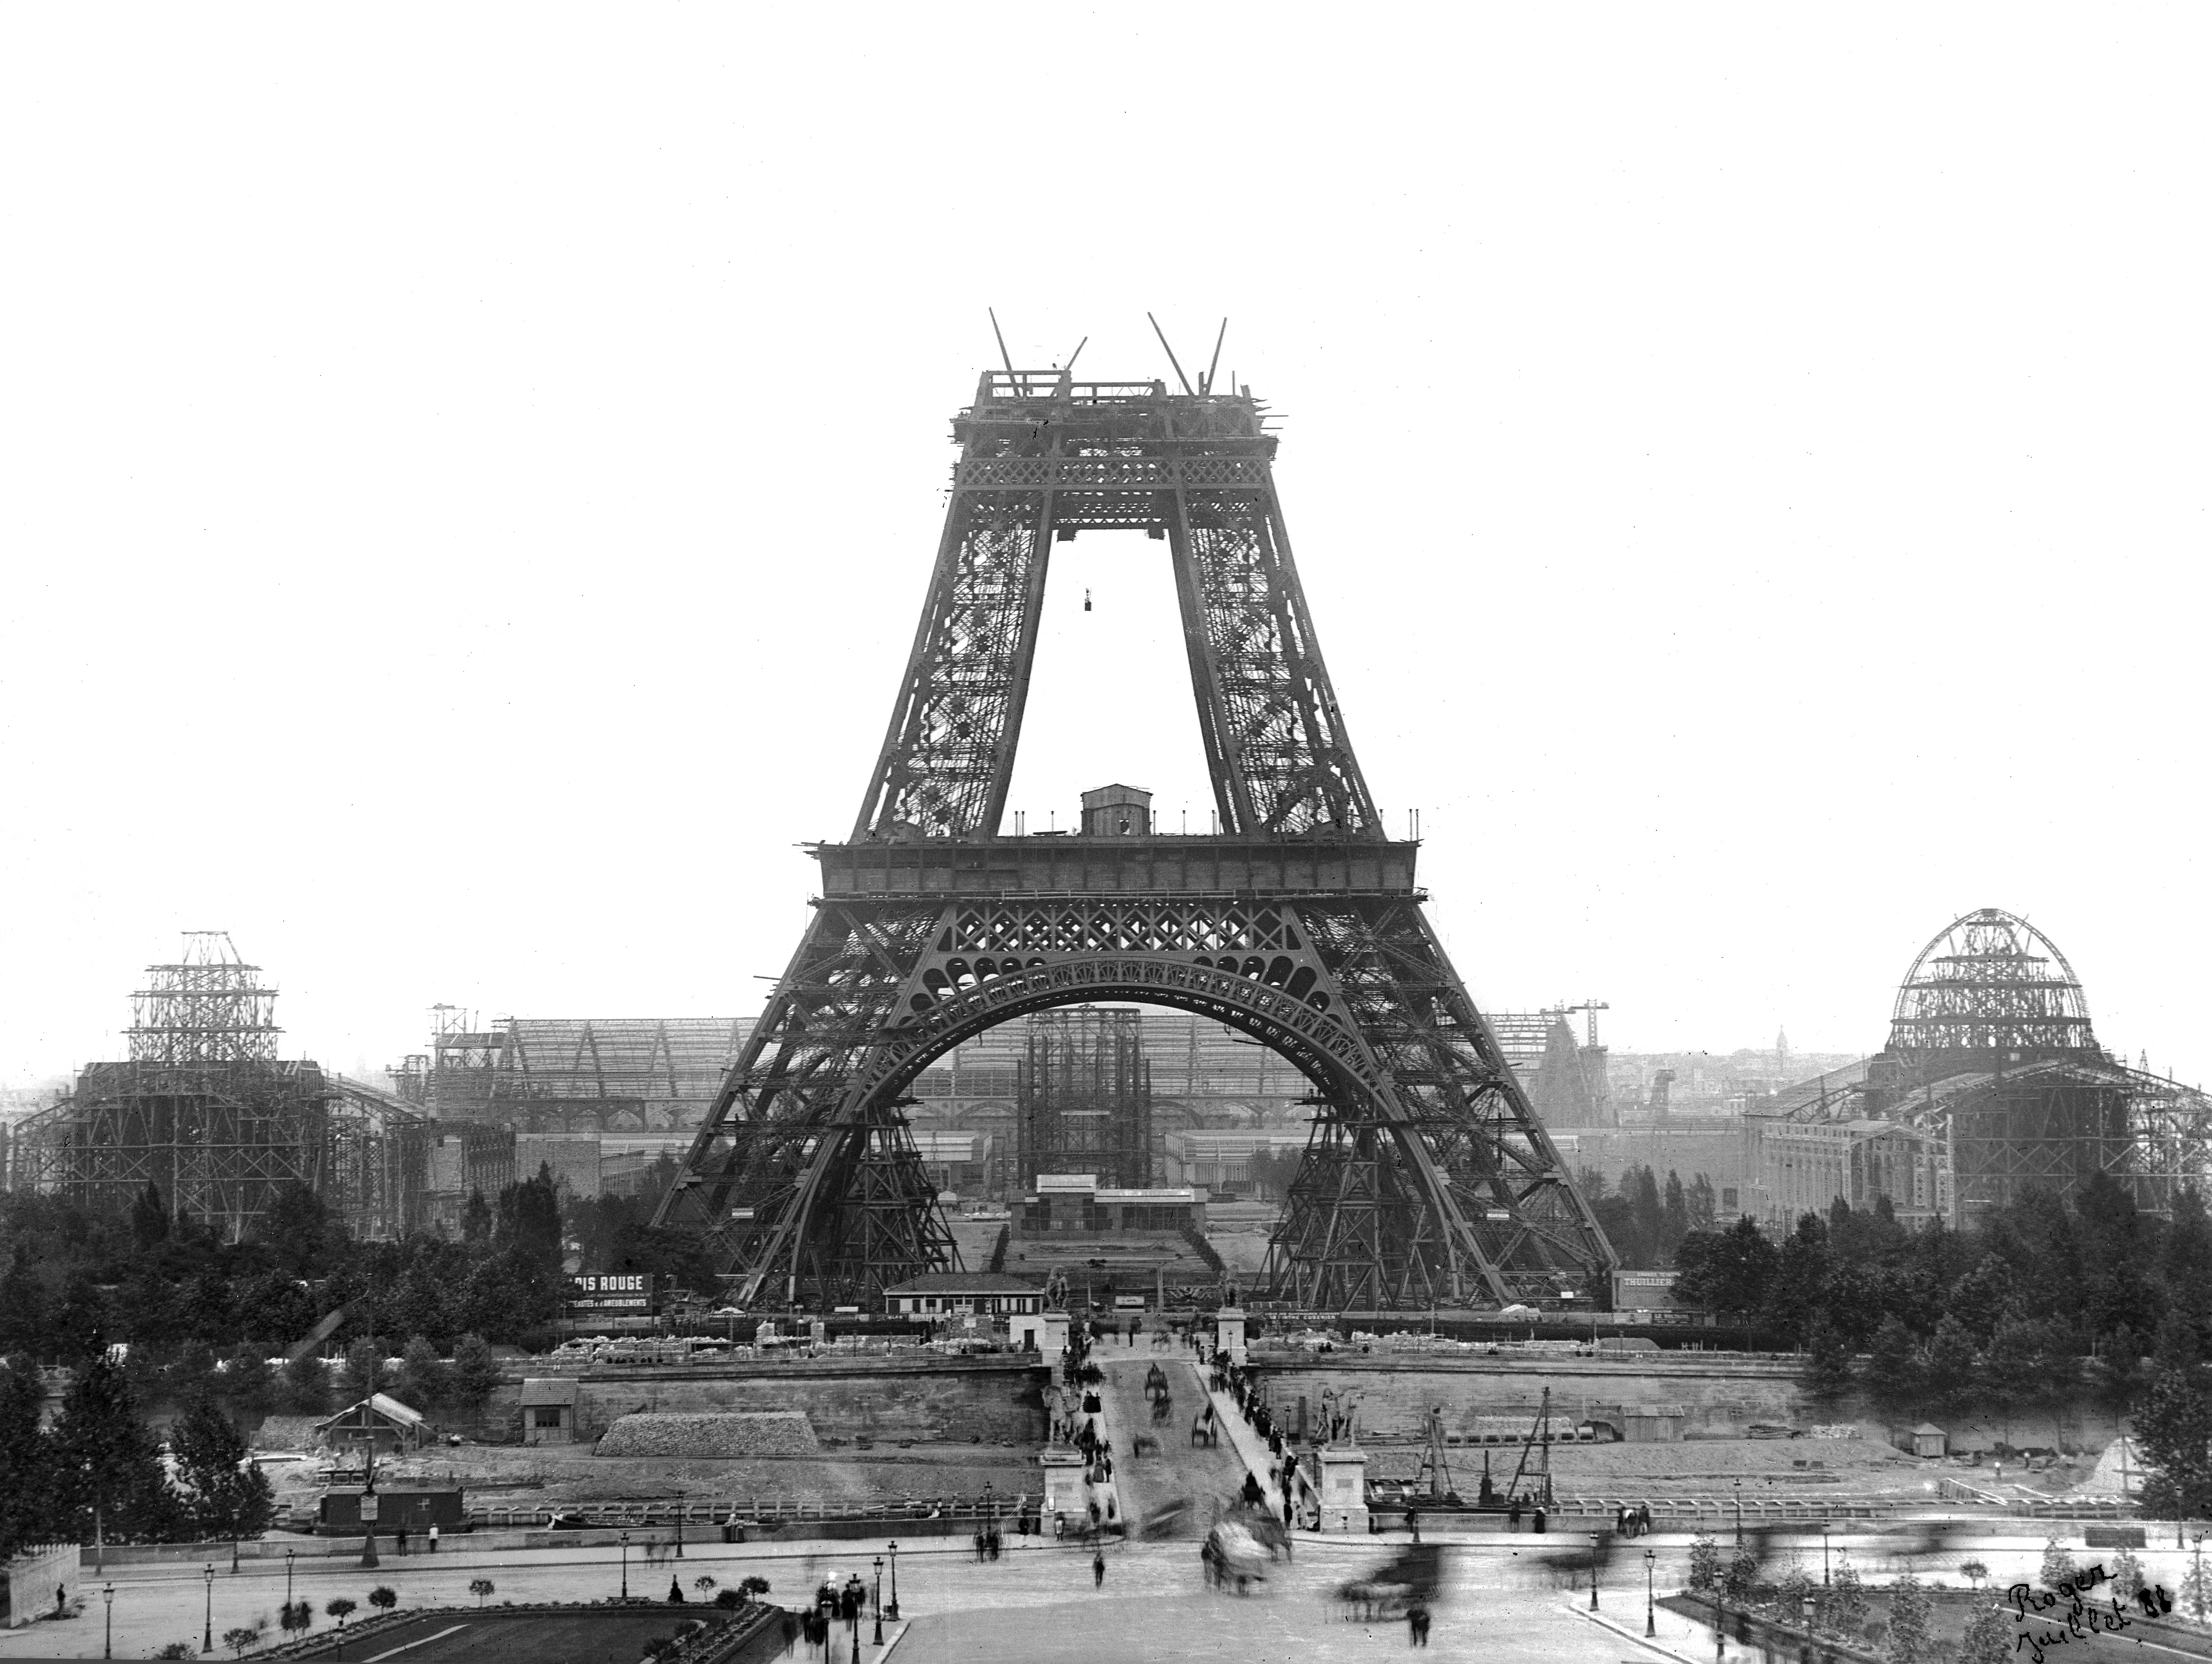 The Eiffel Tower building site in 1888, the year before France's second Universal Expo. It is hard to think of Paris without the tower, which was, until 1930, the tallest building worldwide.